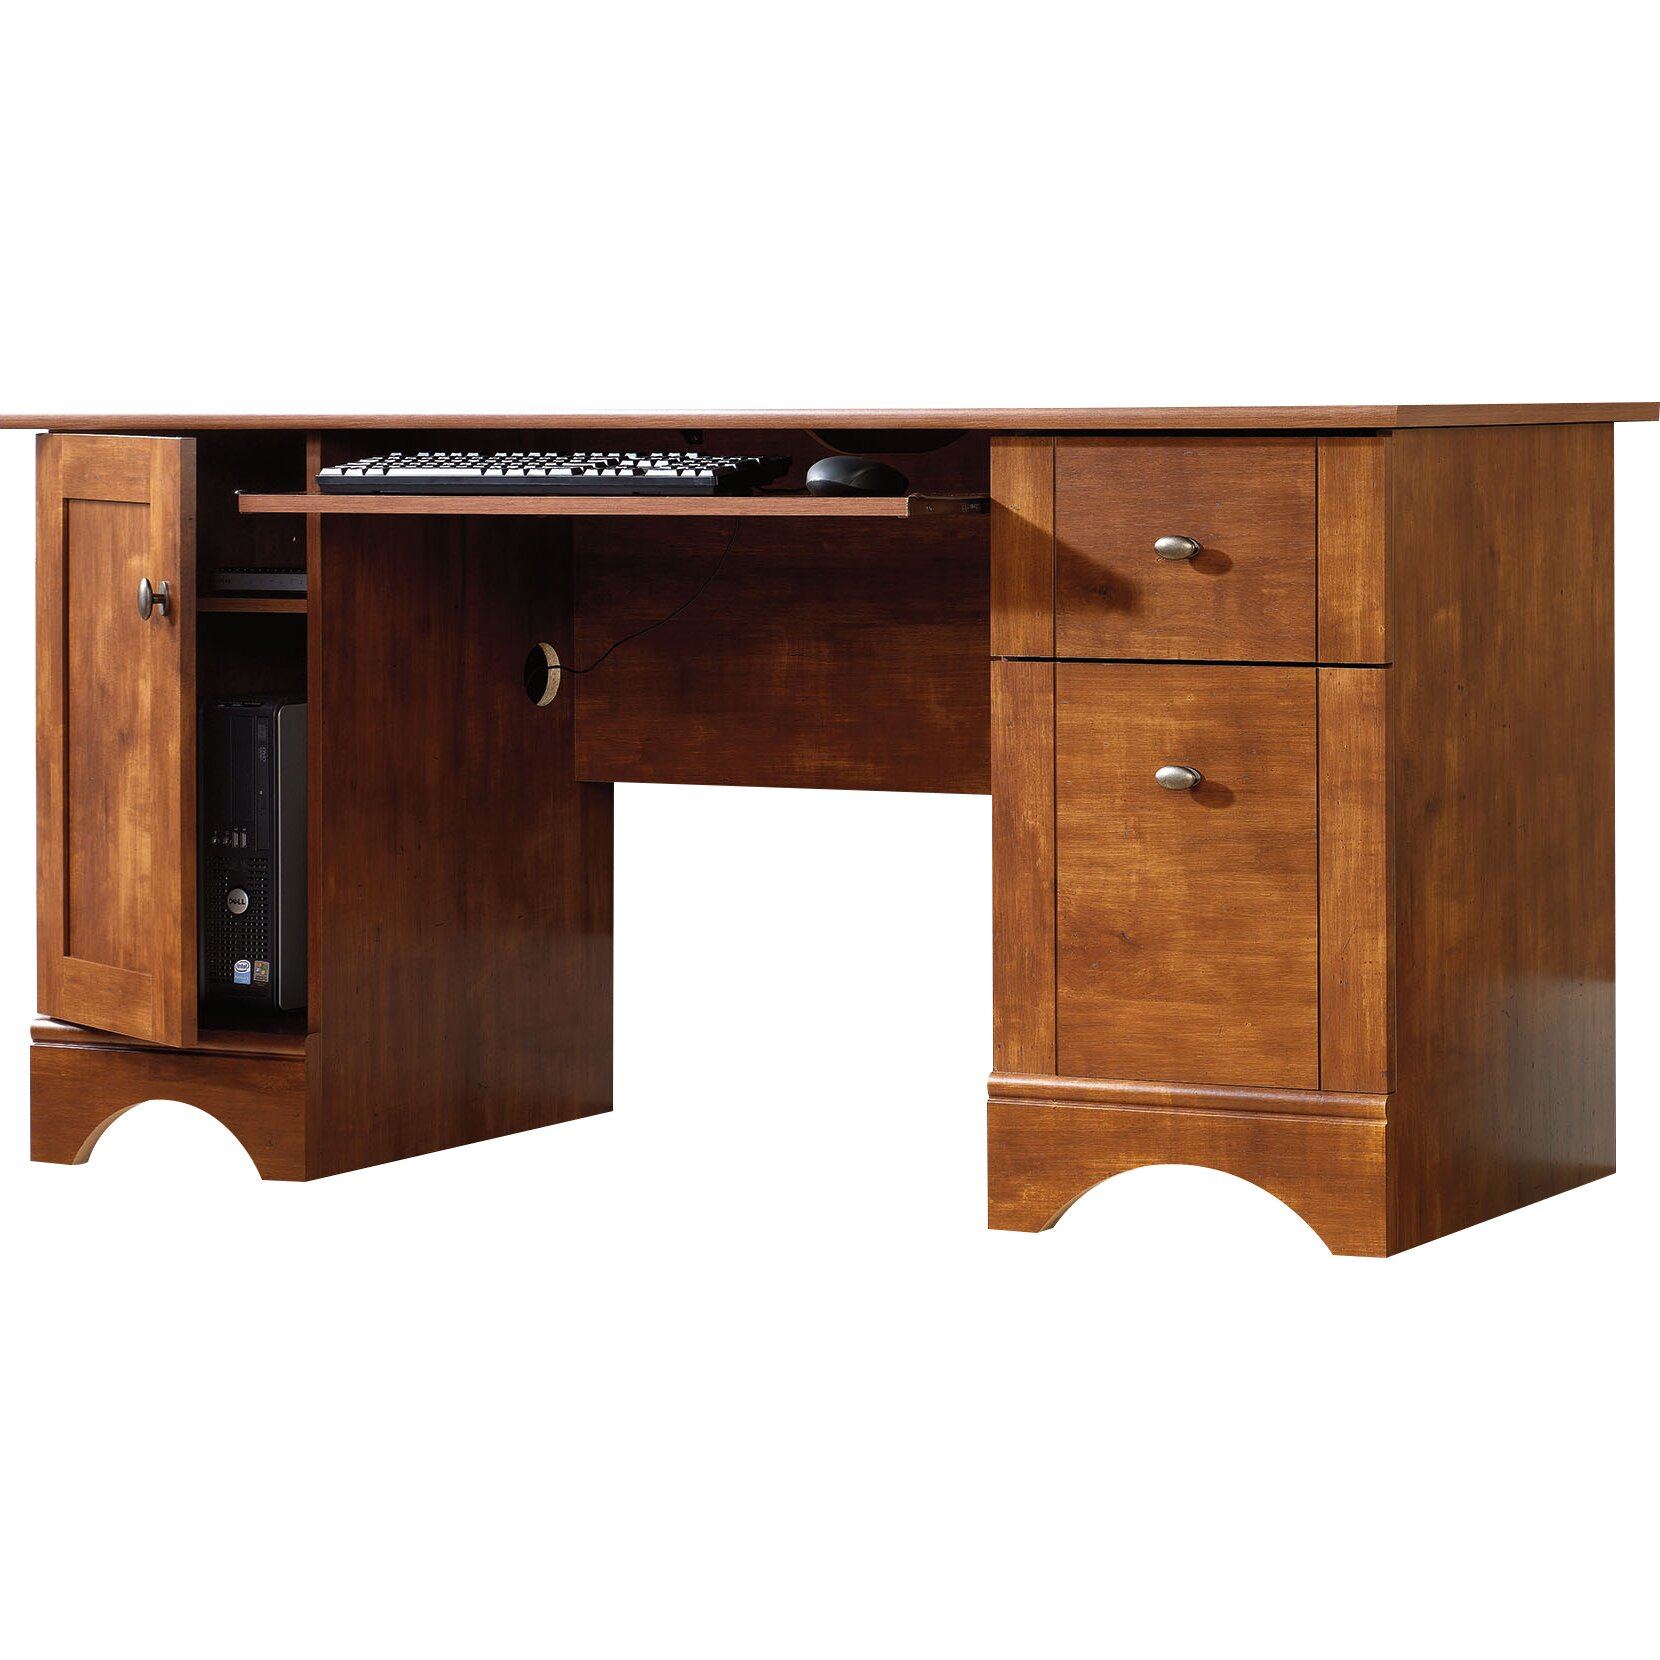 Sauder computer desk with 2 storage drawers reviews wayfair - Sauder office desk ...